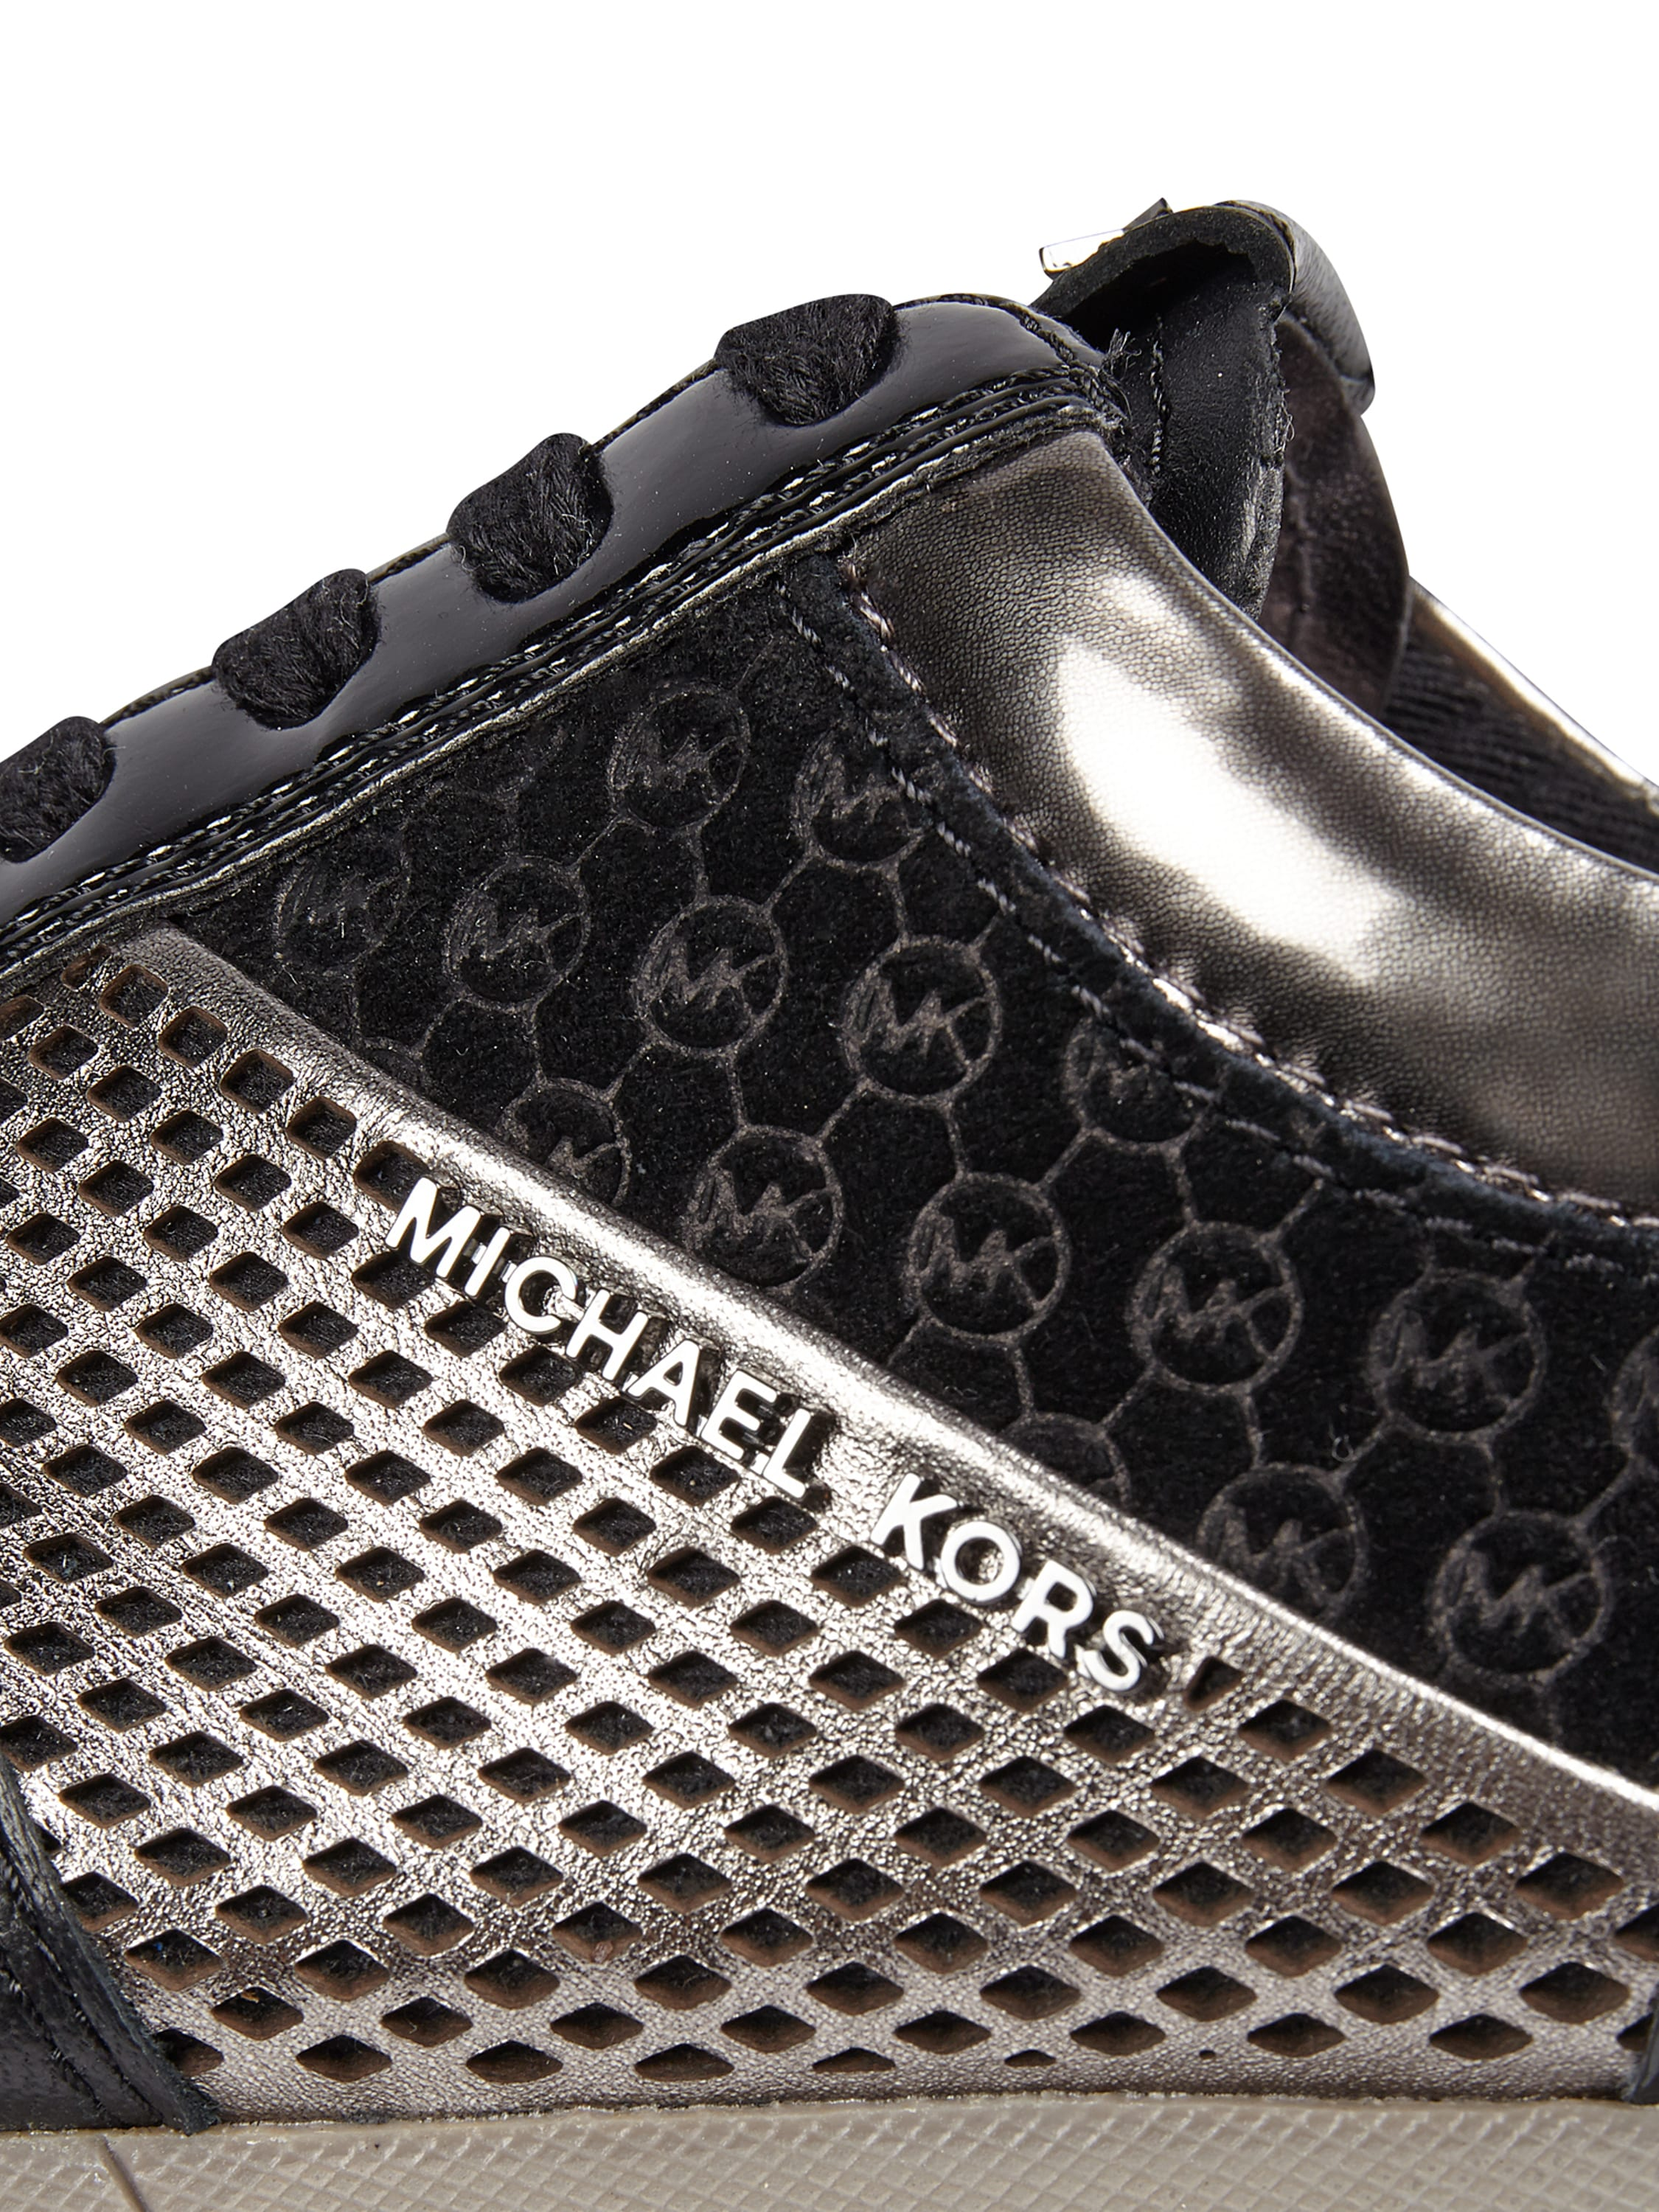 michael michael kors sneaker aus echtem leder mit kontrastbesatz in grau schwarz online. Black Bedroom Furniture Sets. Home Design Ideas